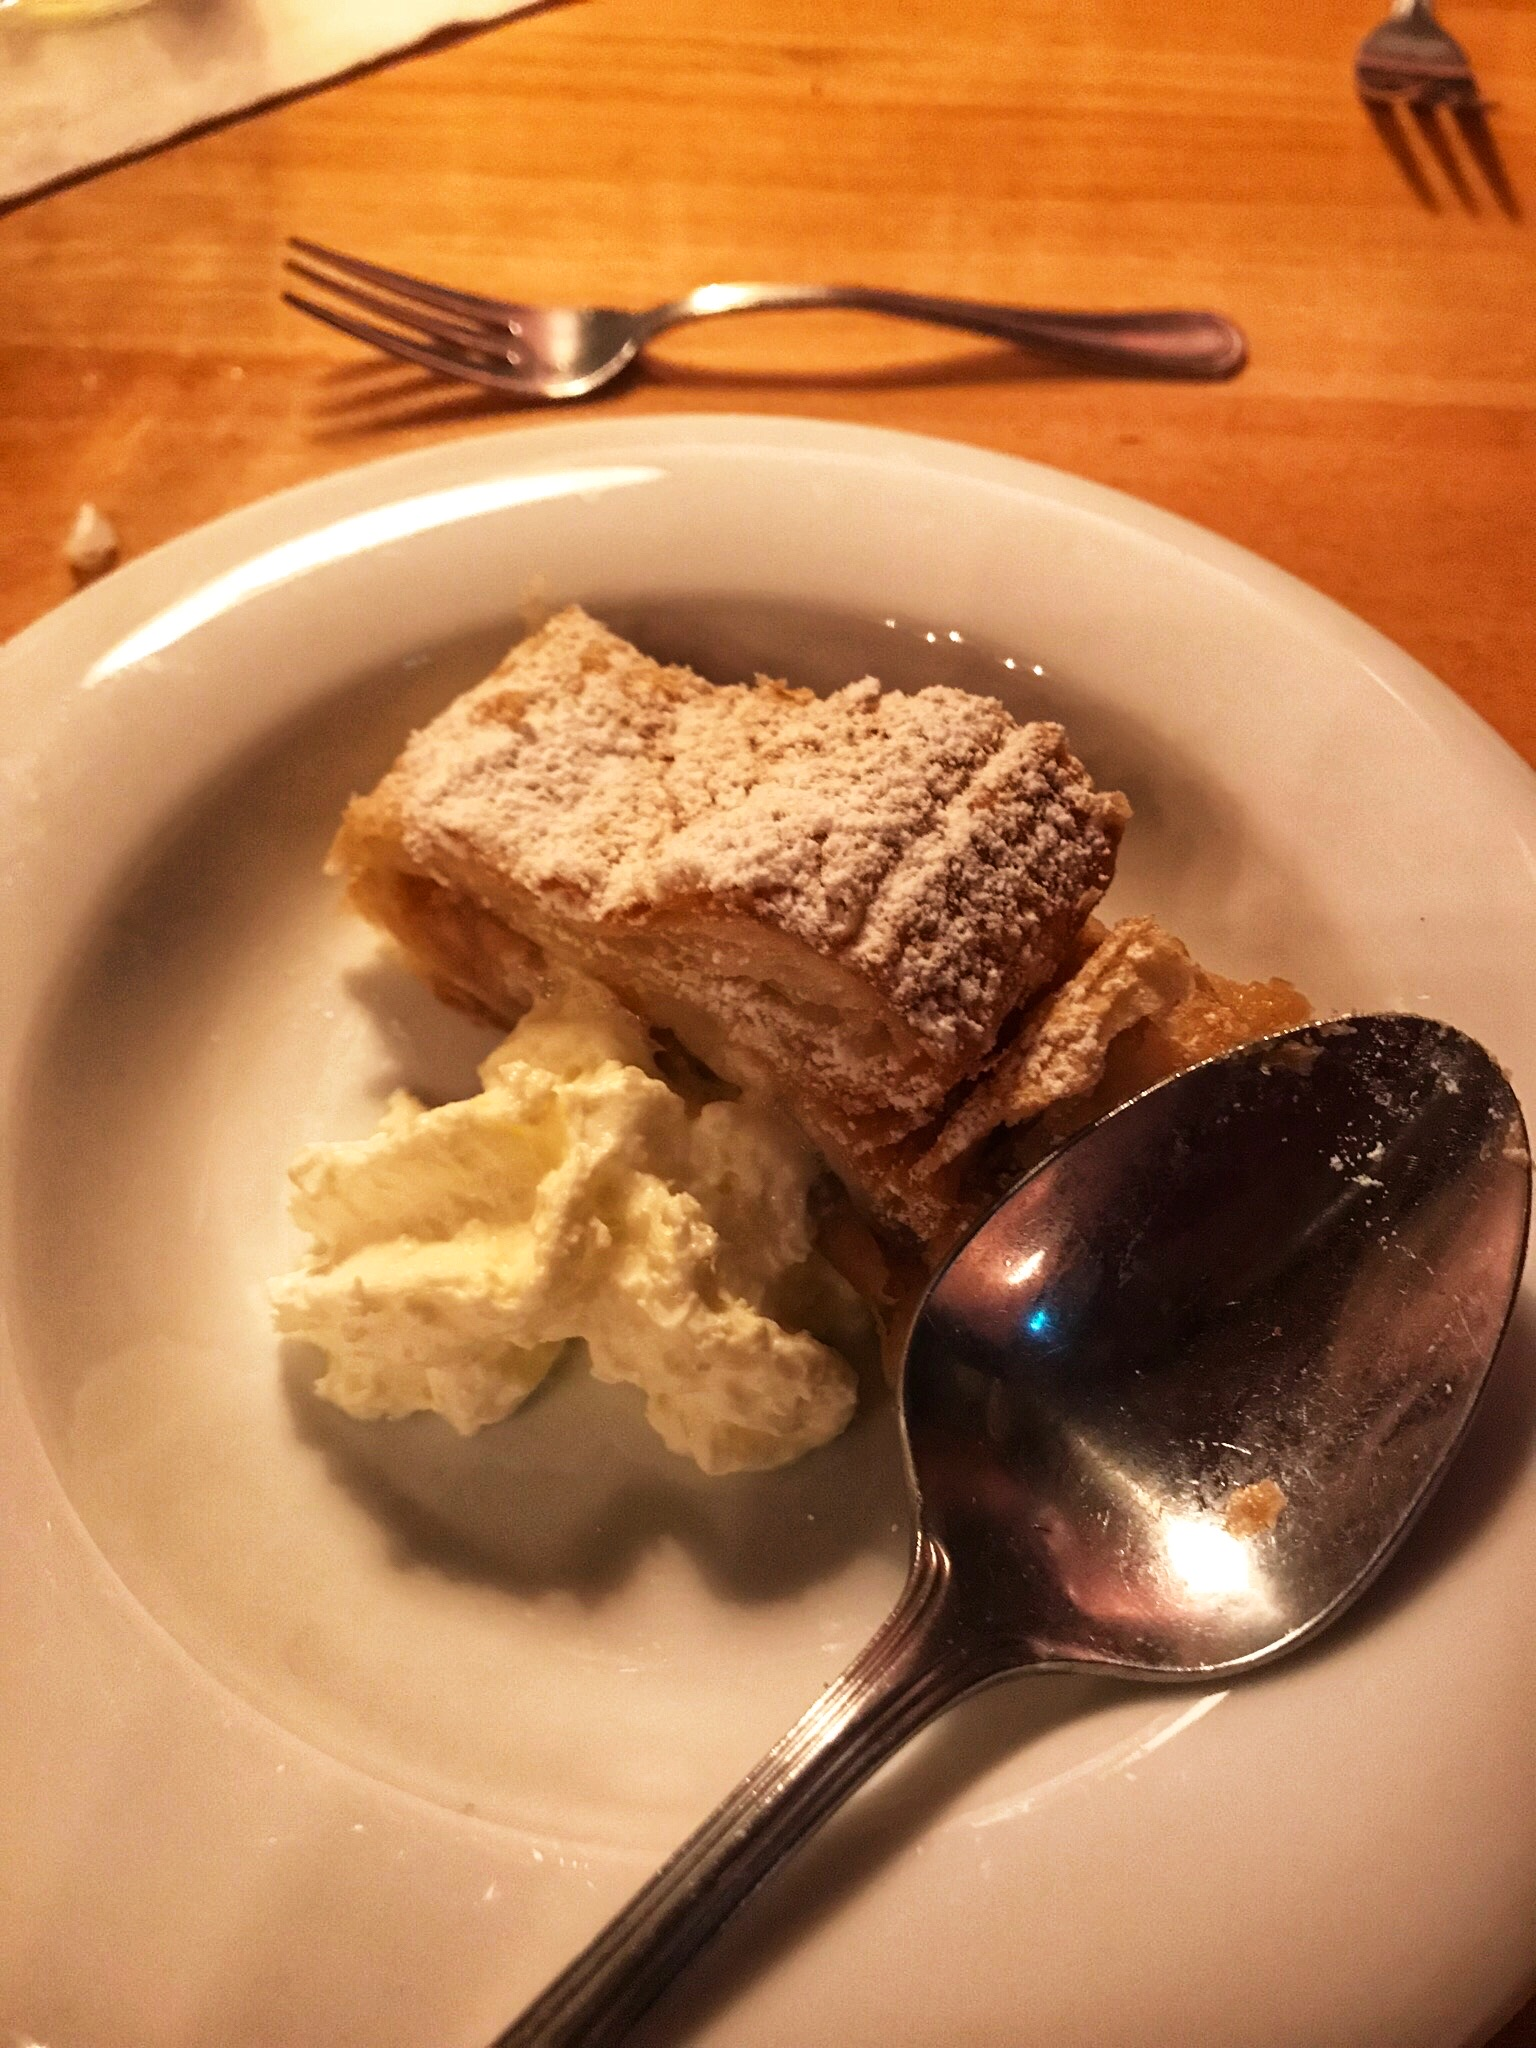 Apfelstrudel with a dab of whipped cream!